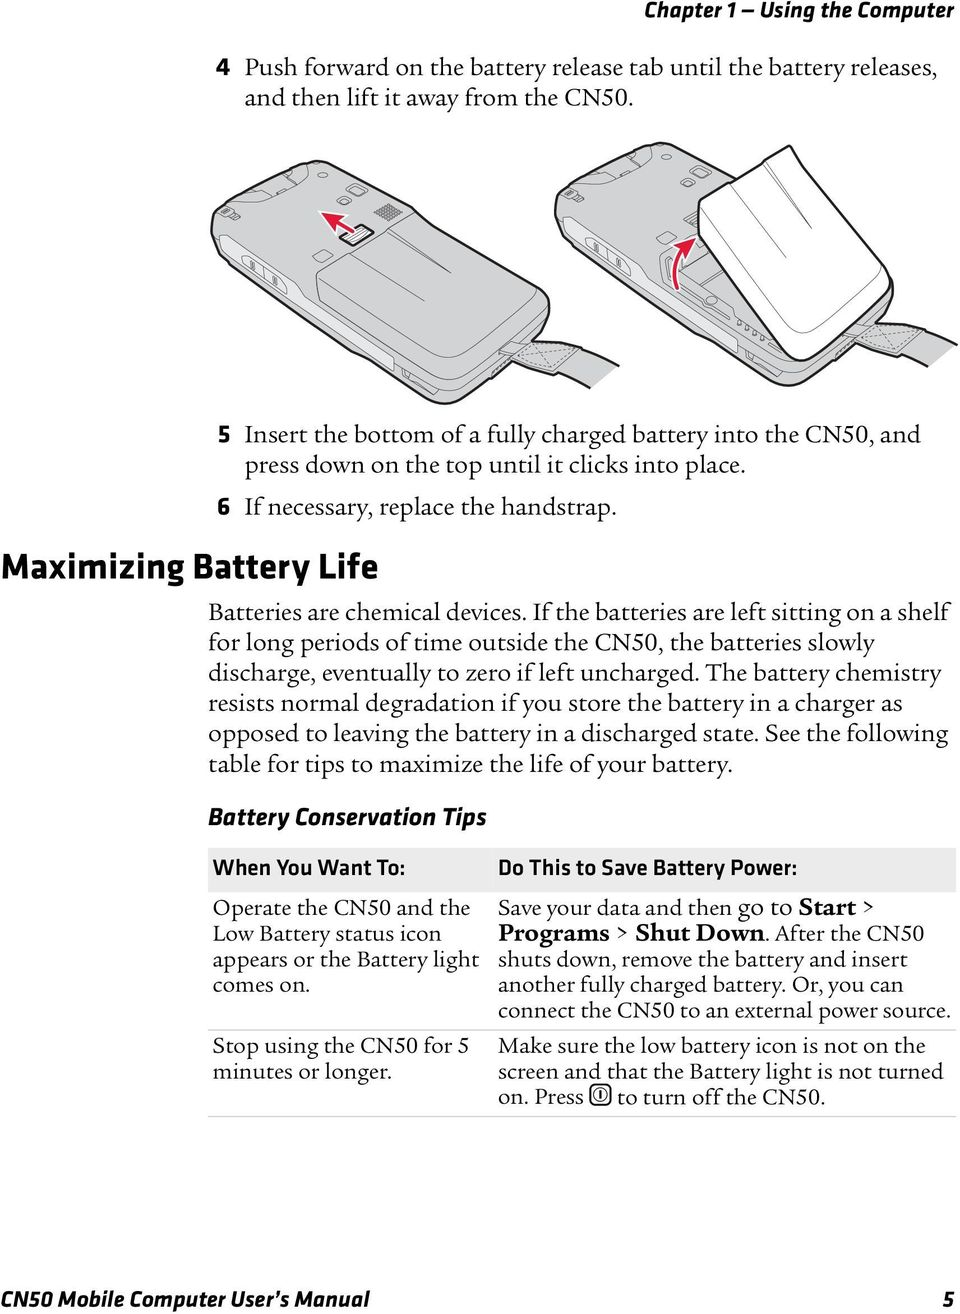 Batteries are chemical devices. If the batteries are left sitting on a shelf for long periods of time outside the CN50, the batteries slowly discharge, eventually to zero if left uncharged.